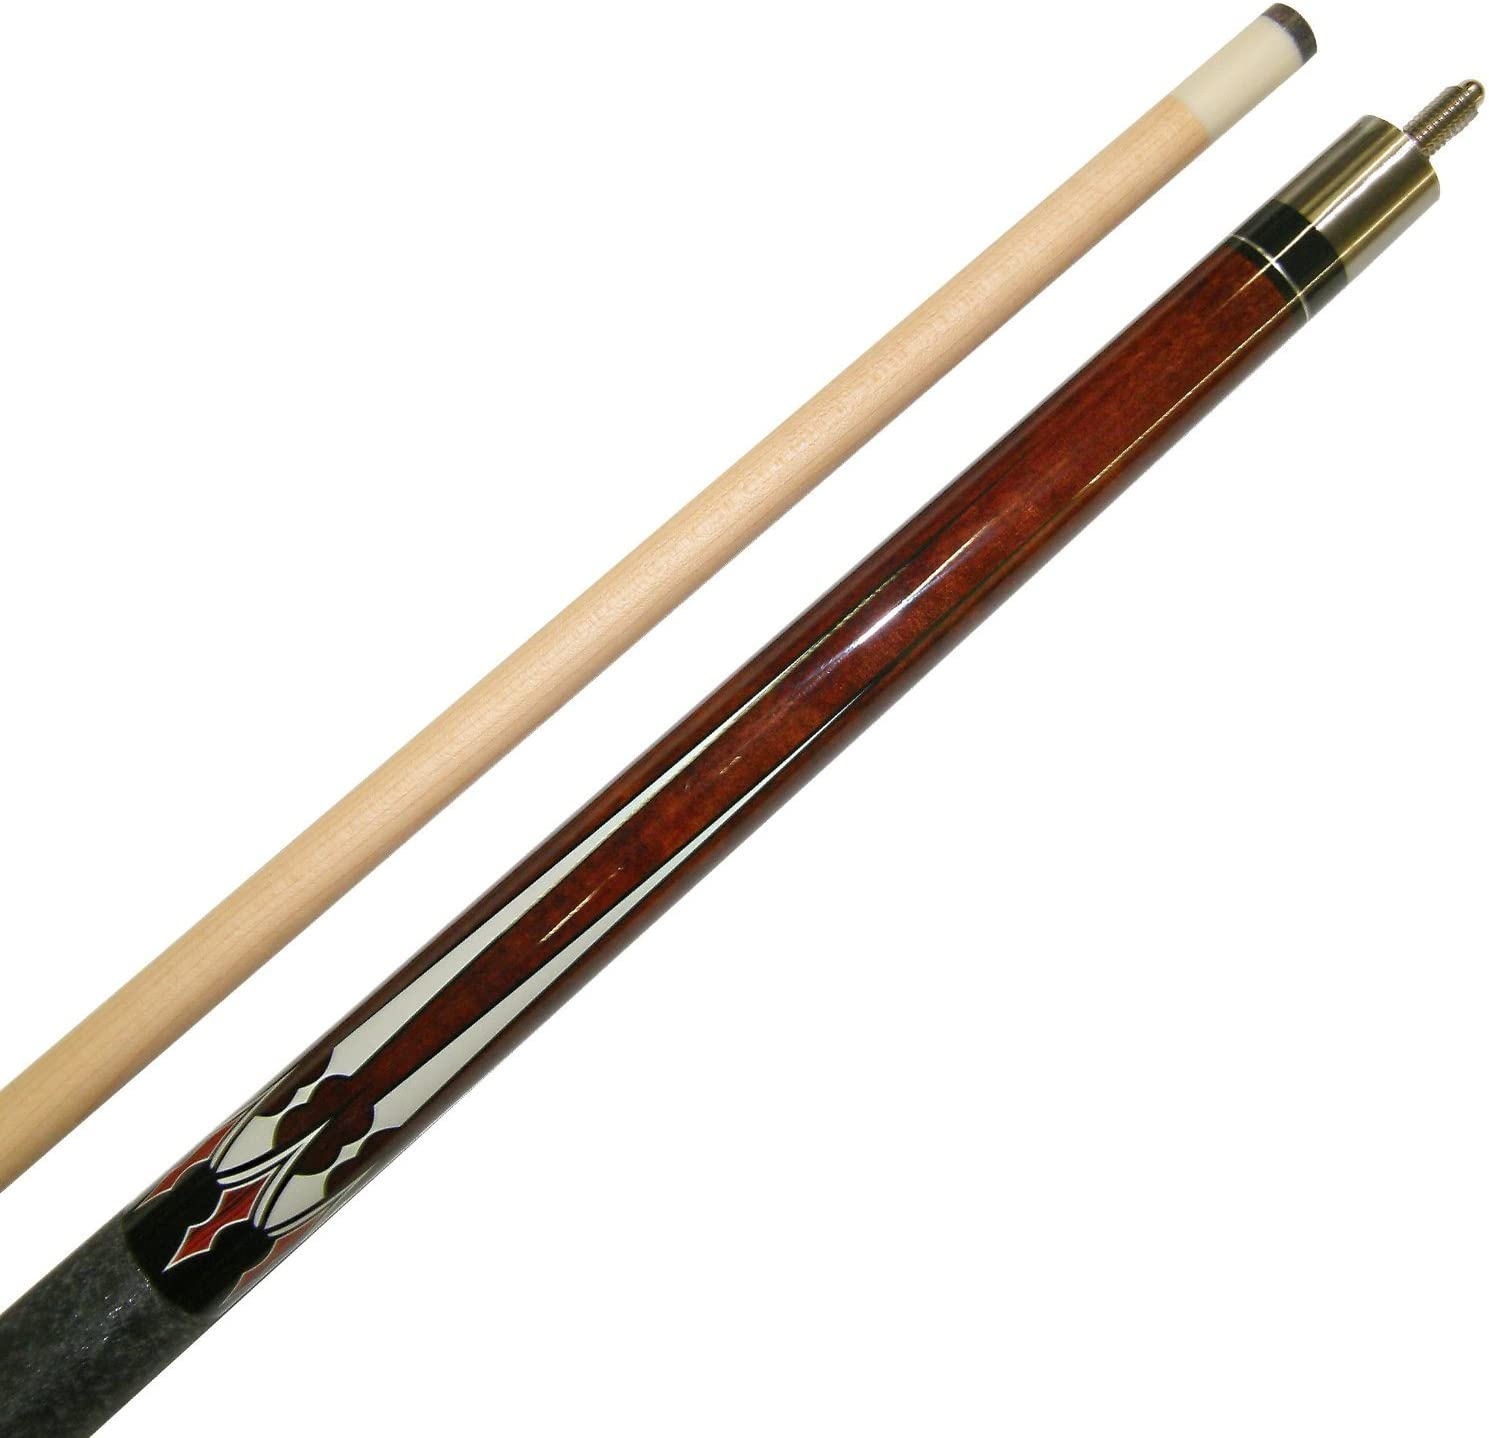 Billiard Stick Several Colors To Choose From 18 Or 19 Ounce Short 48 2 Piece Hardwood Maple Pool Cue